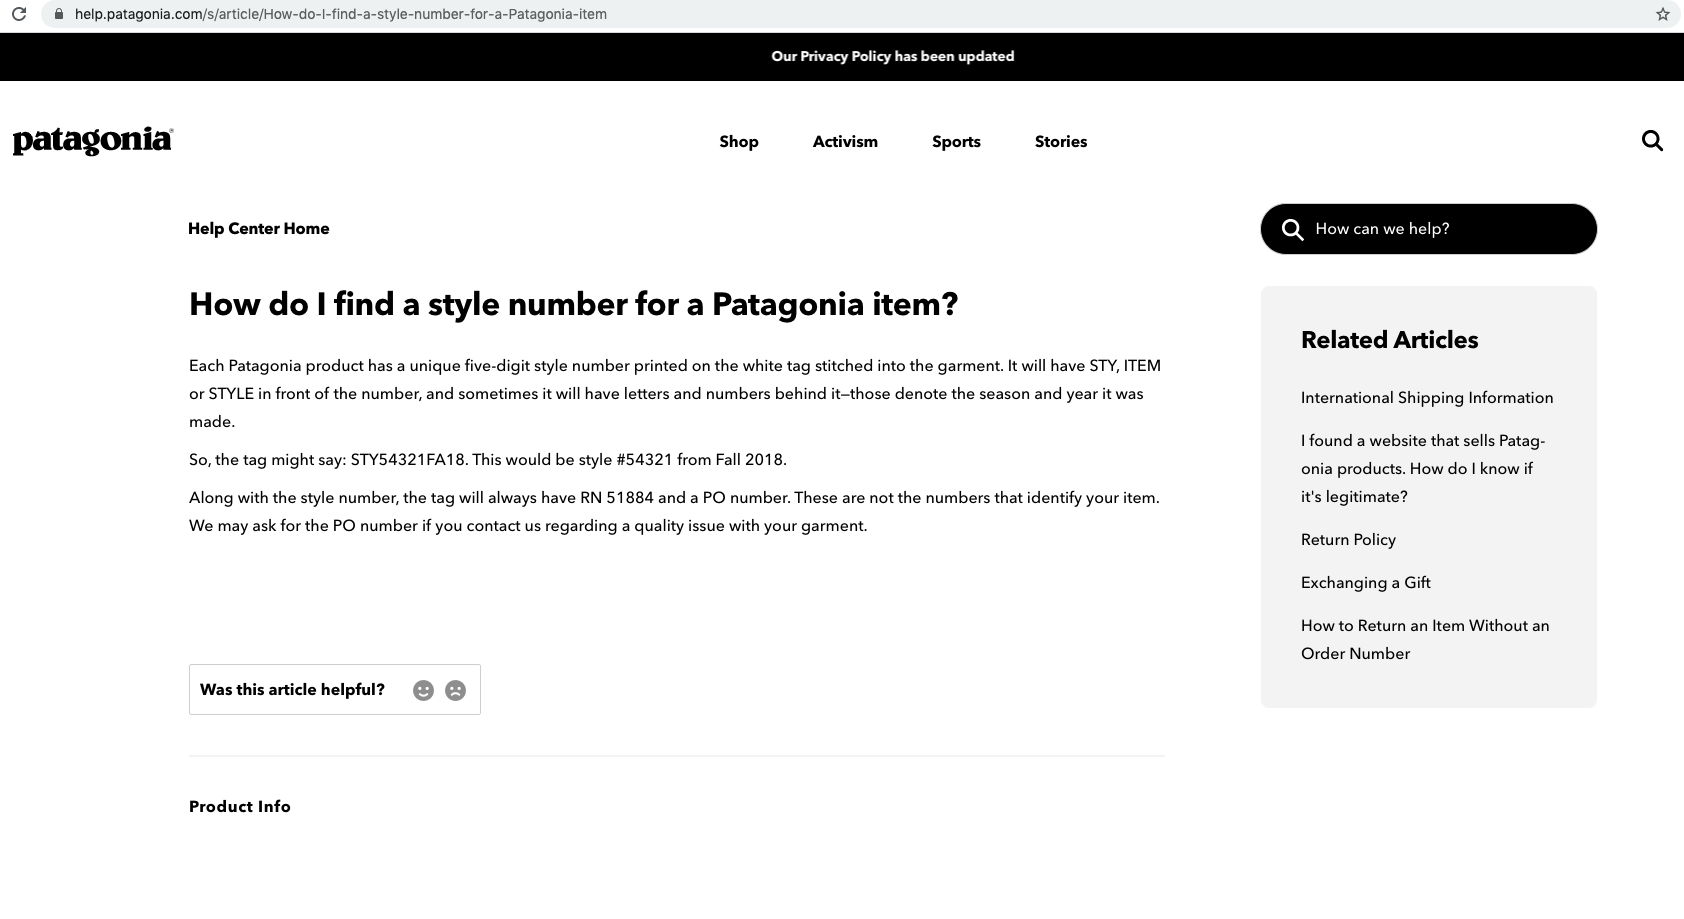 Patagonia Q&A example